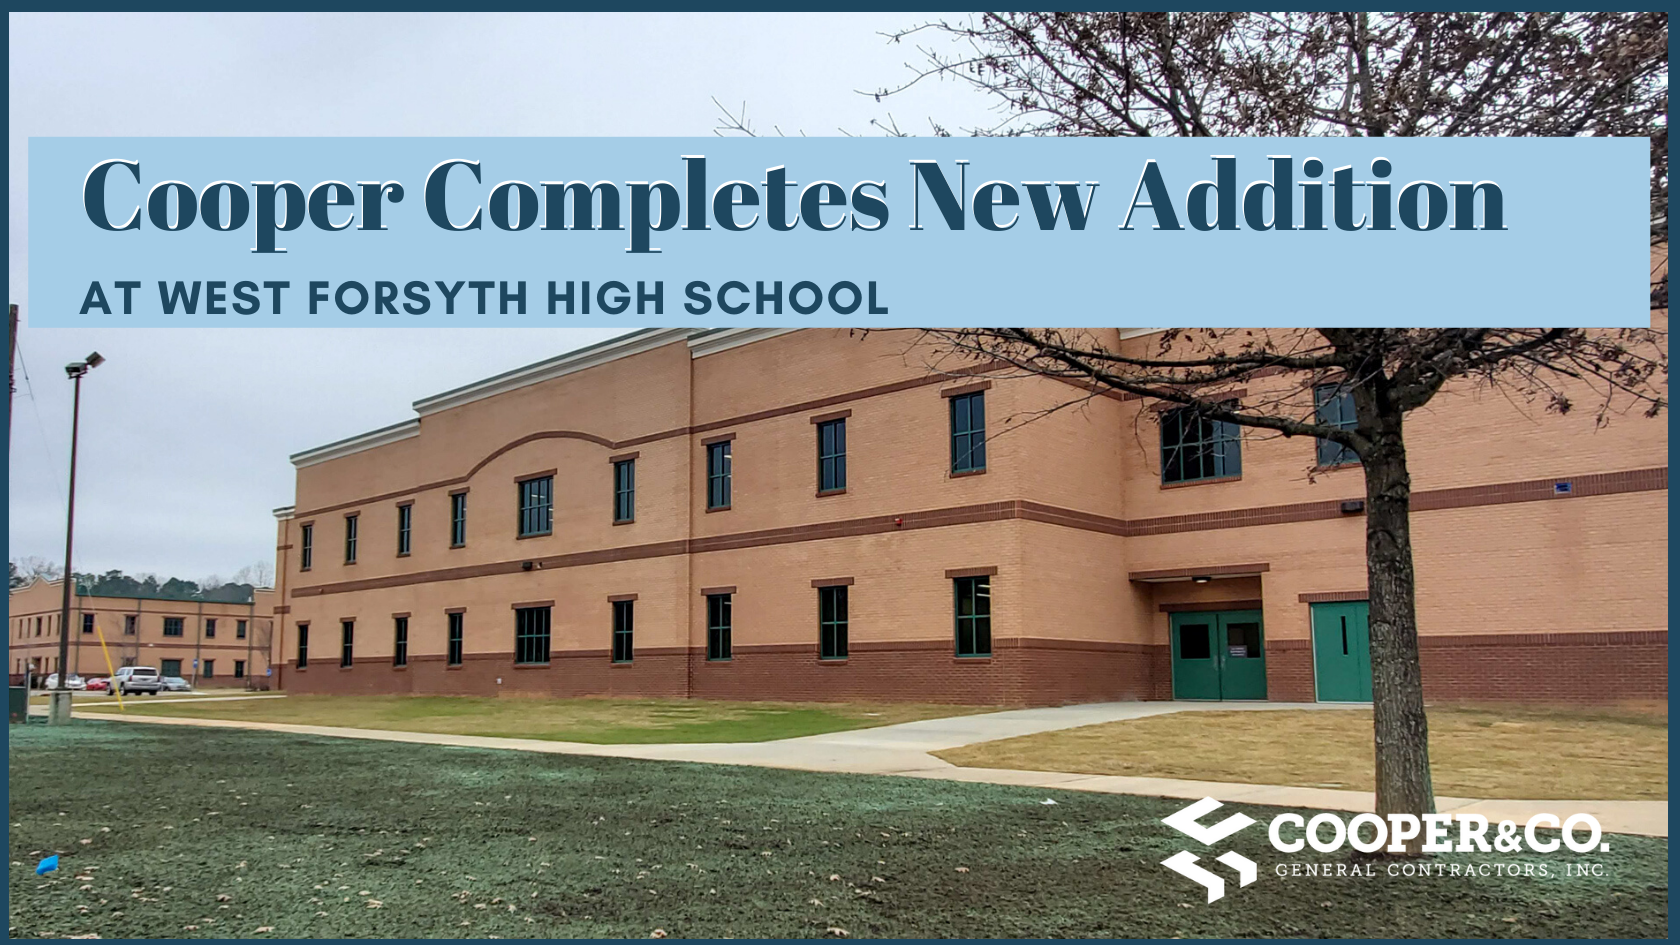 Project Update:  Cooper Completes Two Story Addition for West Forsyth High School